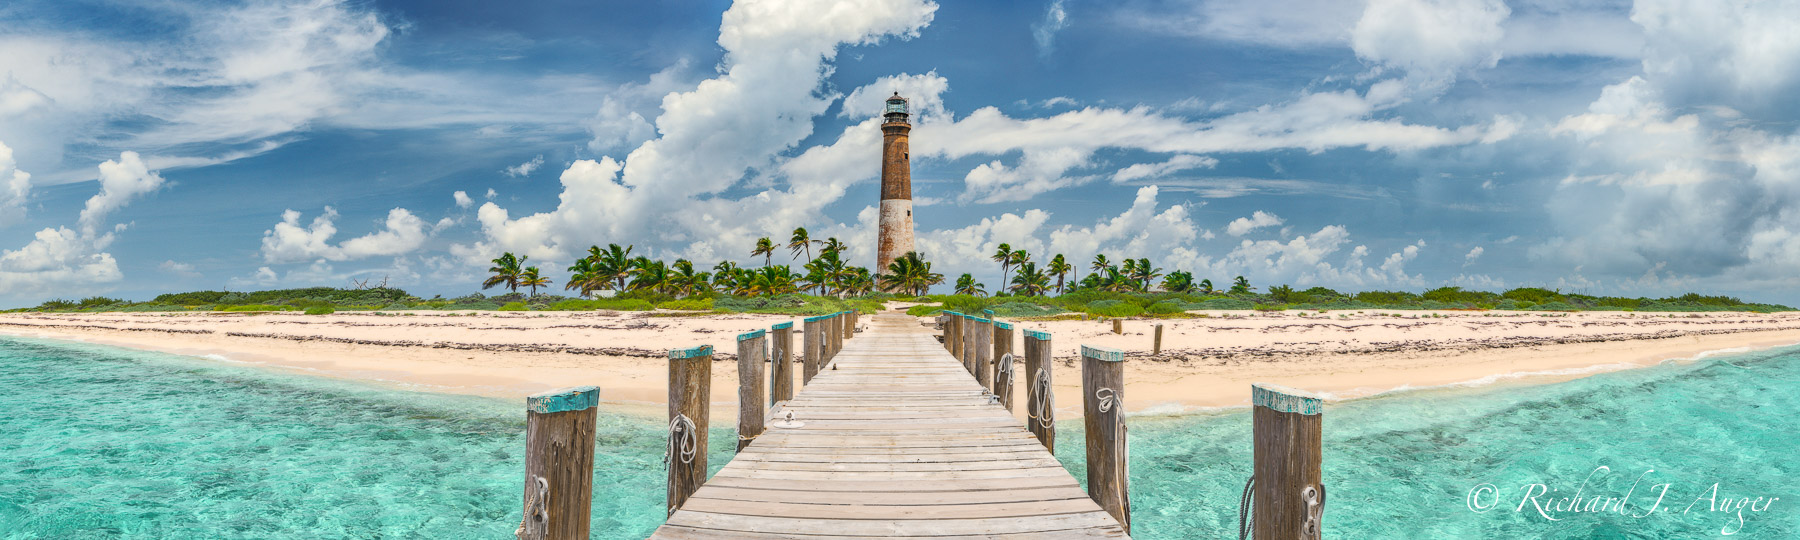 Loggerhead Key, Lighthouse, Dry Tortugas, Dock, Caribbean, Palm Trees, Panorama, Tropics, Bright, Sunny, Midday